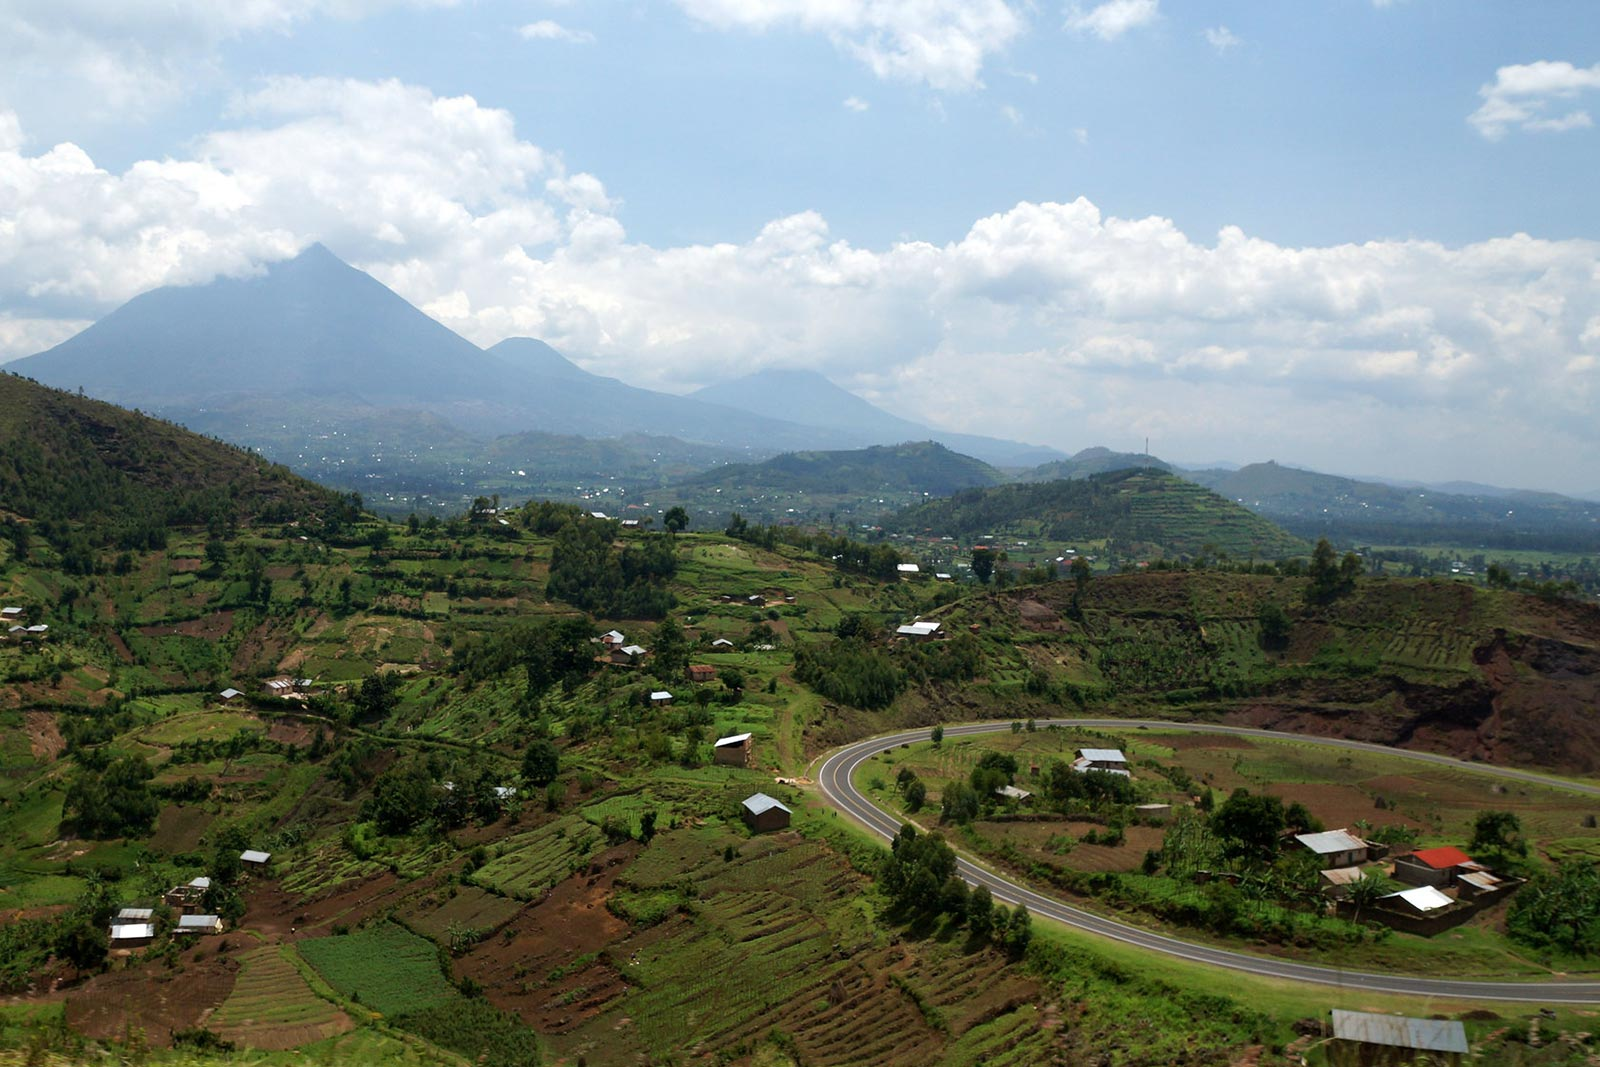 Day 3: Transfer to Bwindi Impenetrable Forest